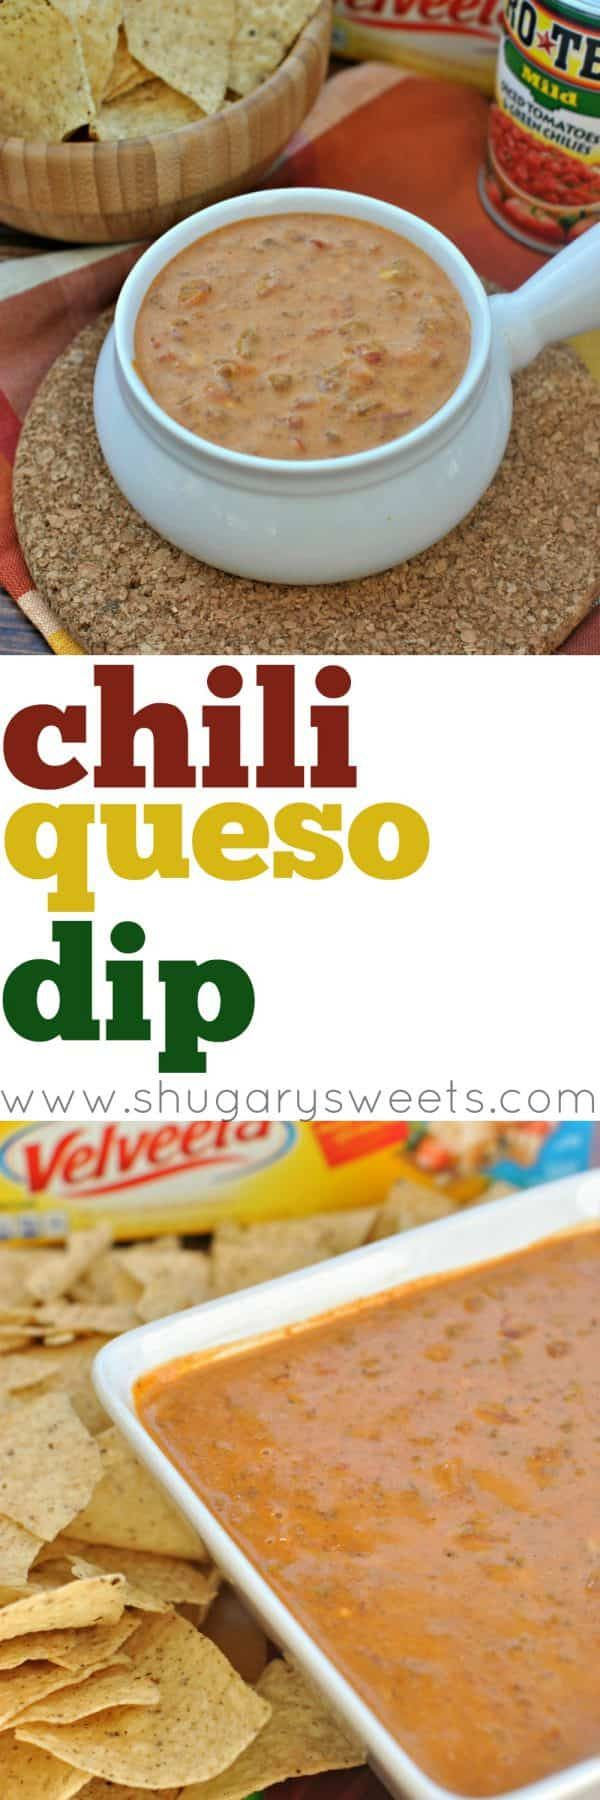 Chili Queso Dip Recipe using Velveeta and RoTel tomatoes. Perfect for your next tailgating party!